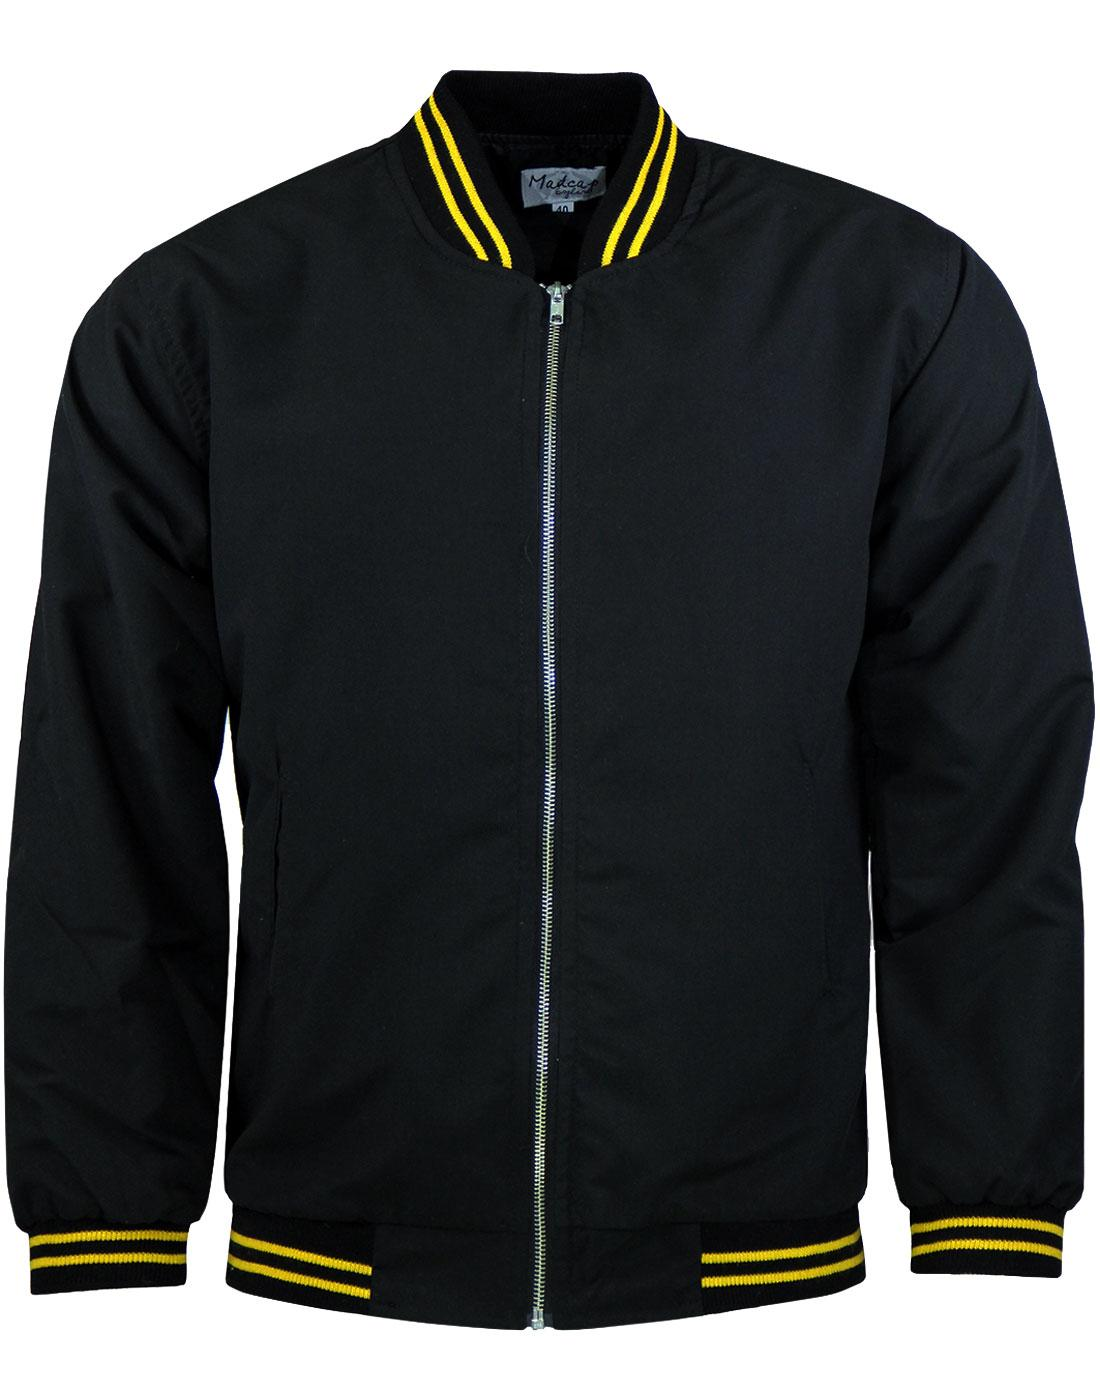 Monkey Jacket MADCAP ENGLND Retro Mod Jacket (B/Y)